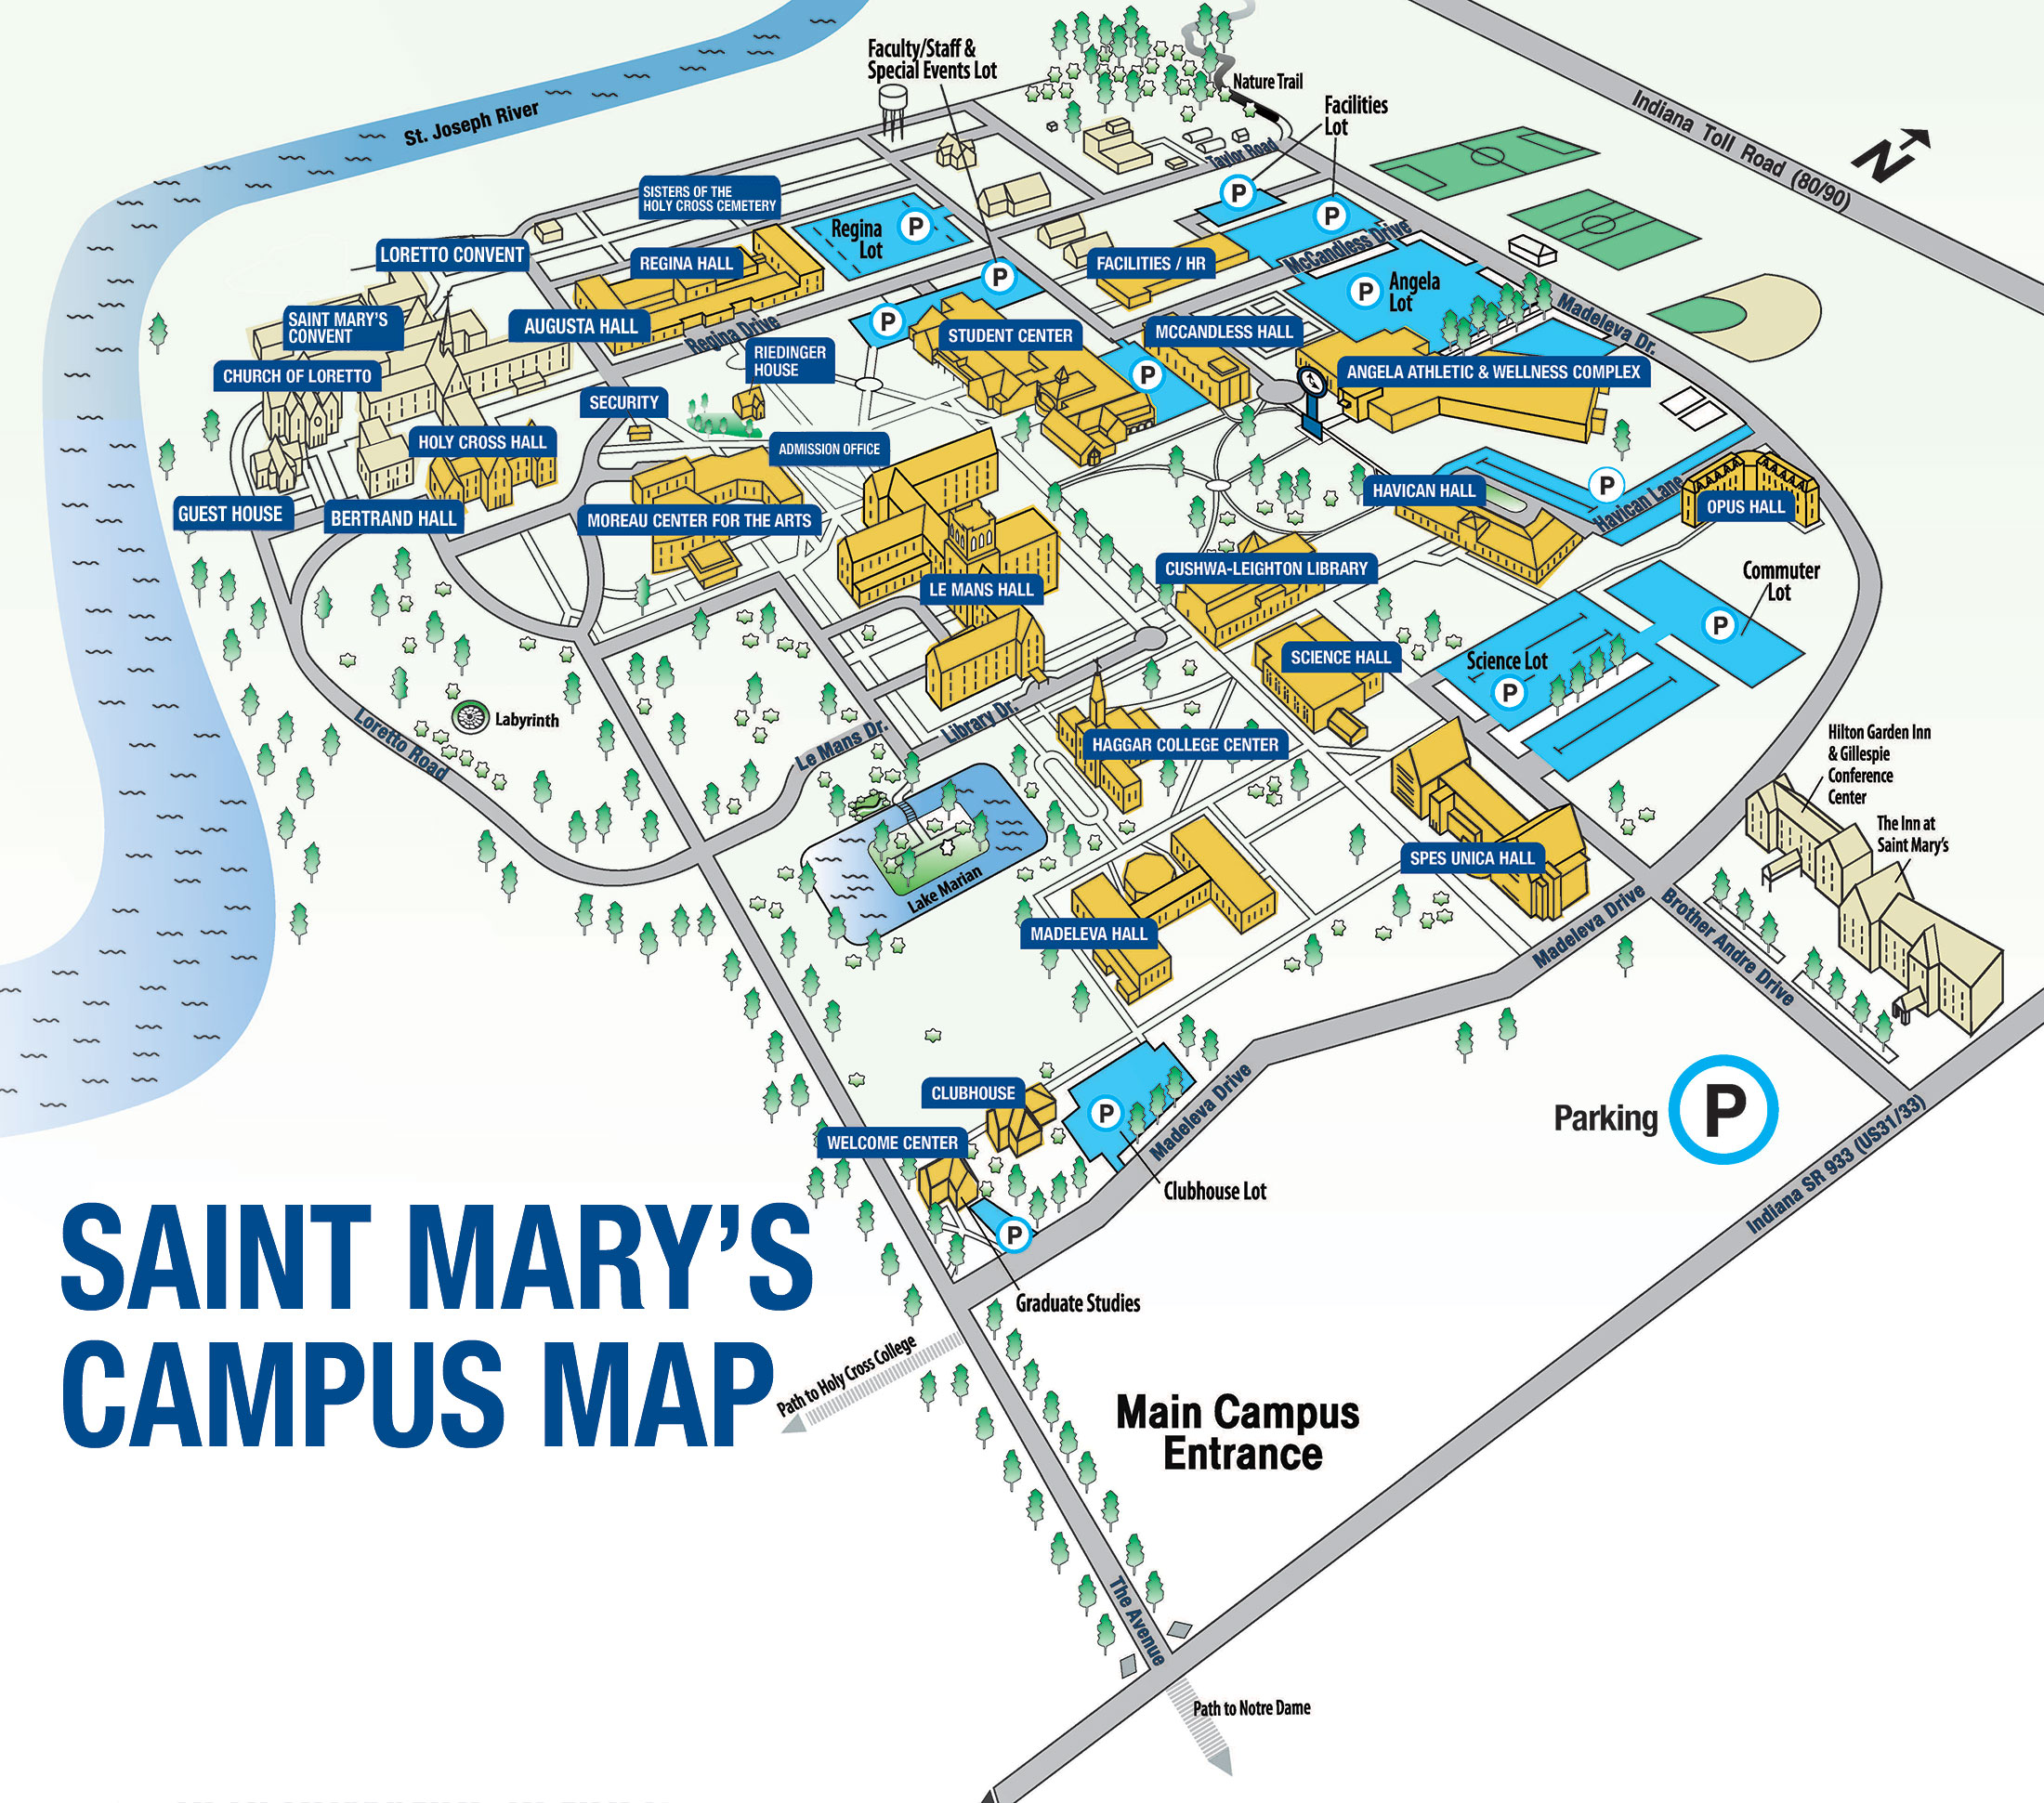 Saint Mary's Campus boundary map